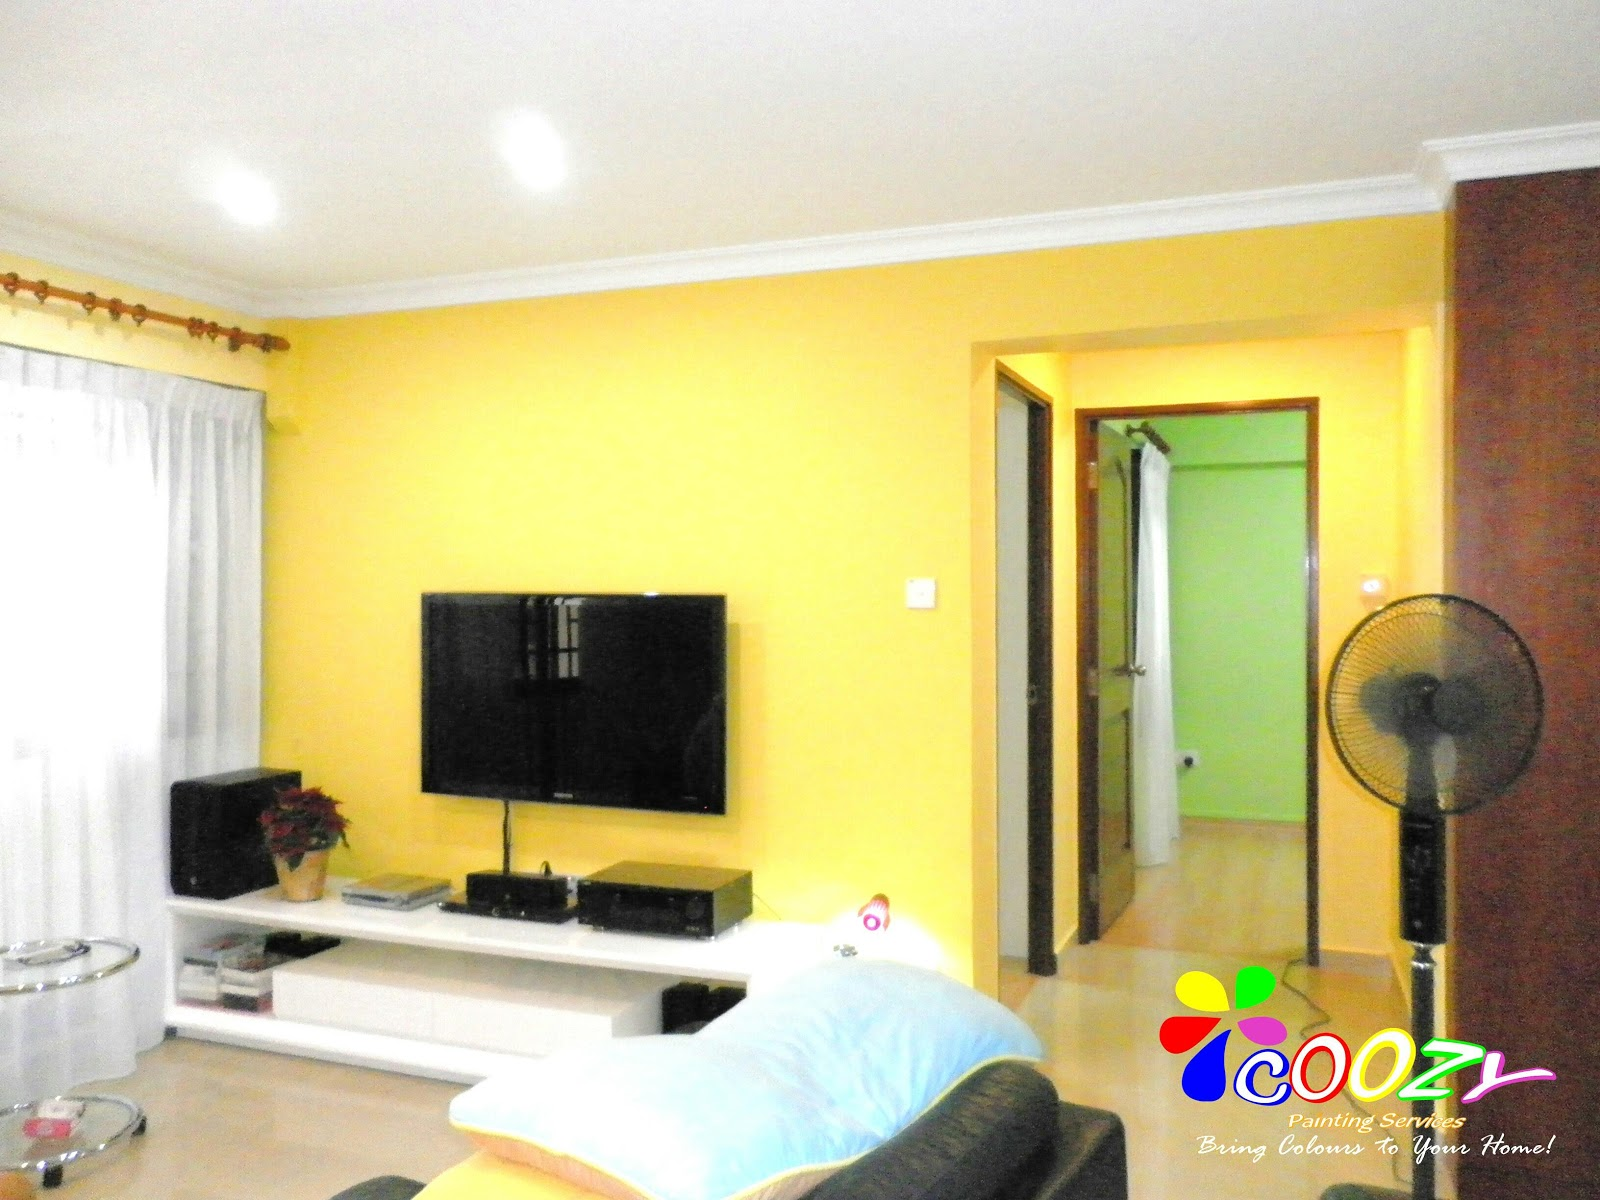 Coozy Painting Services -Painting Services Singapore